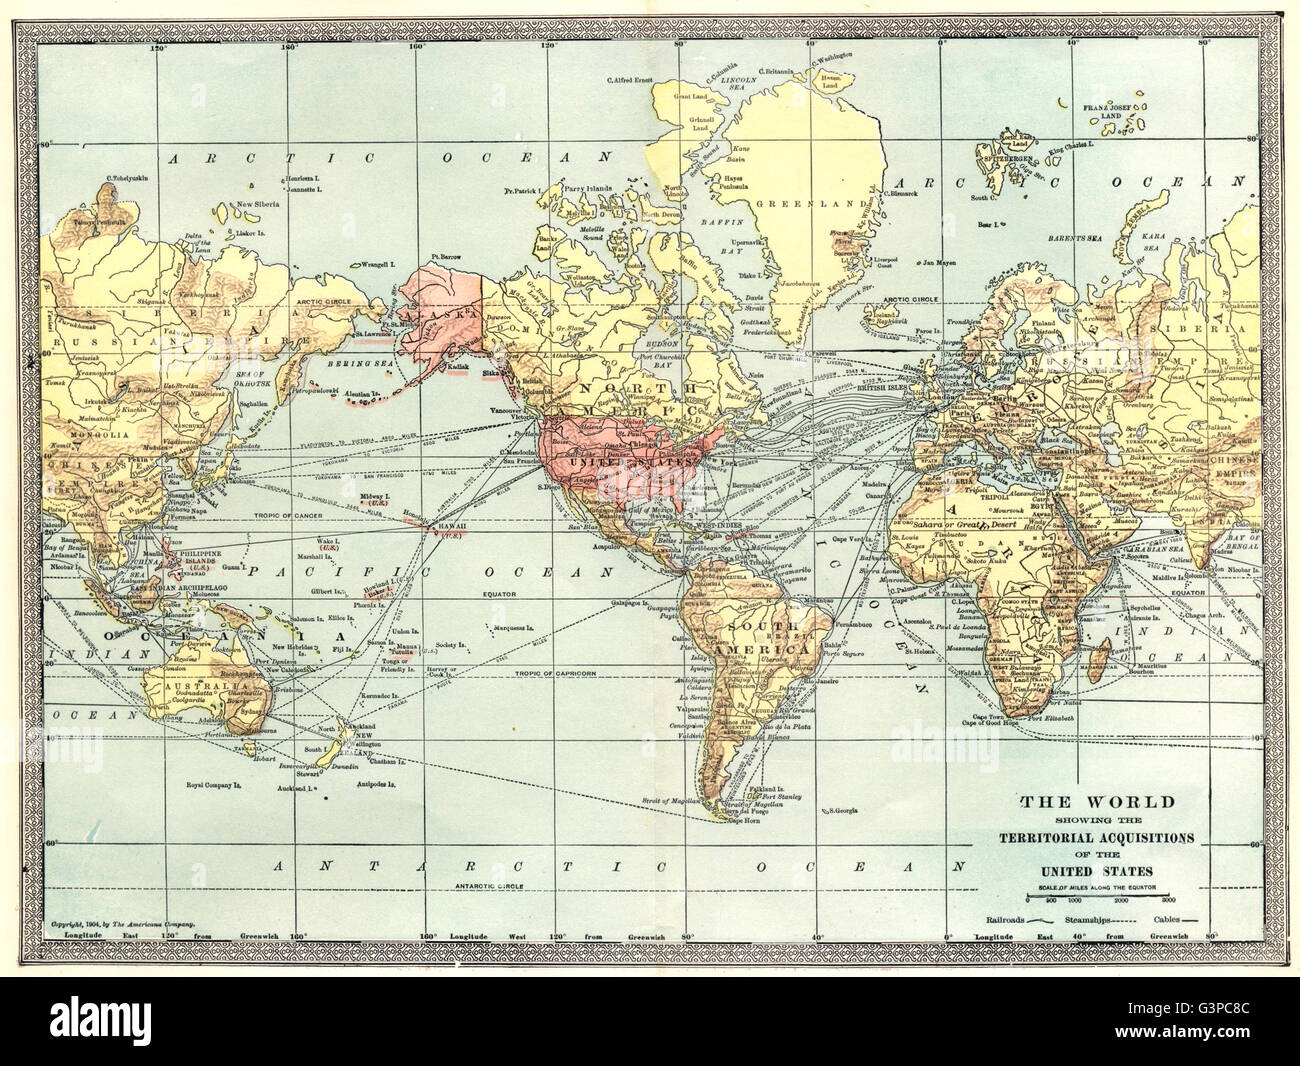 The World showing United States territorial acquisitions Stock Photo ...